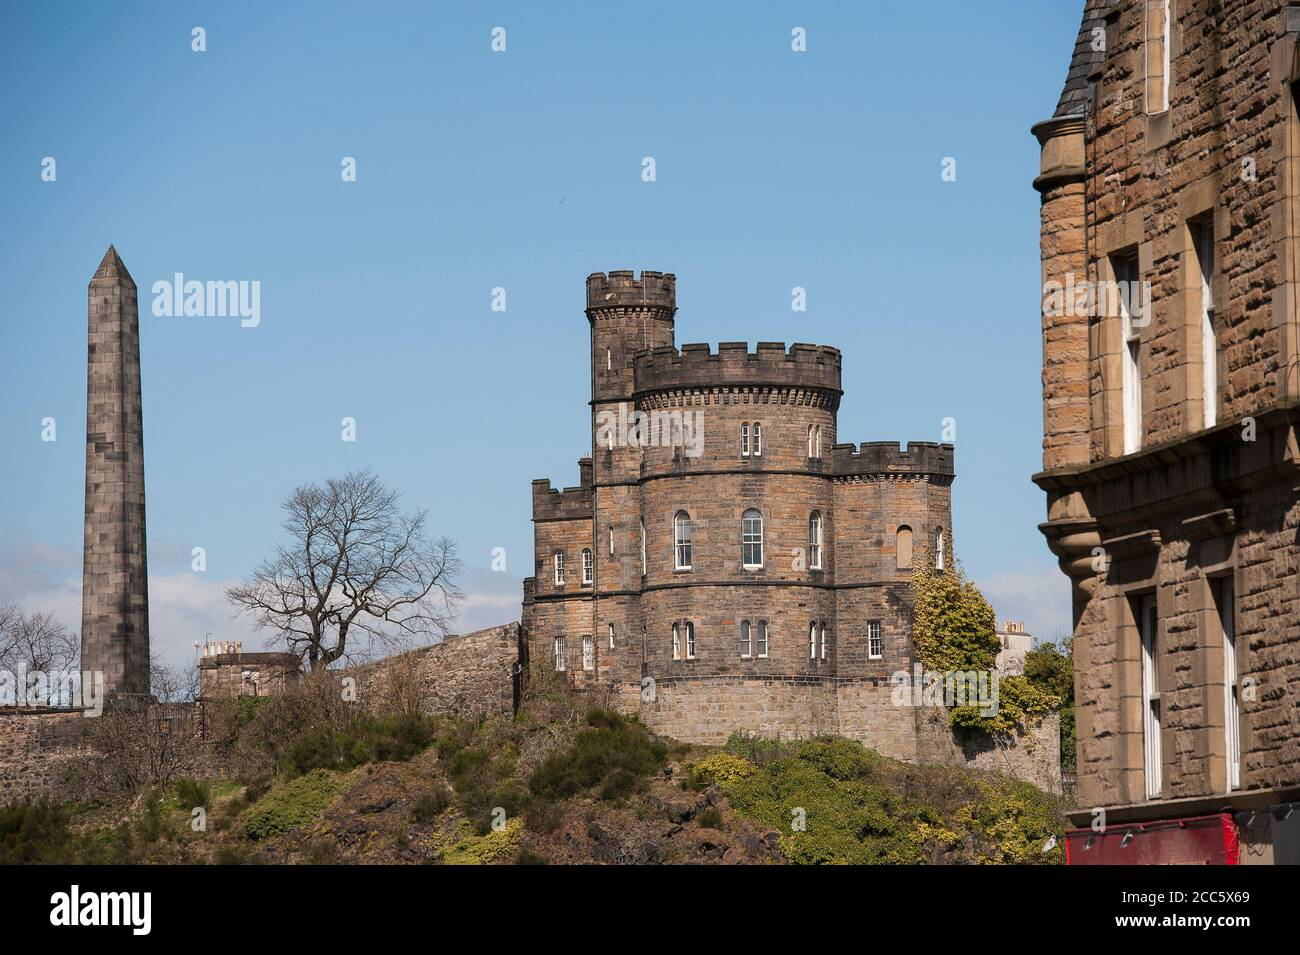 Scottish Government's Governor's House on Calton Hill with the Political Martyrs' Monument behind, Edinburgh, Scotland. Stock Photo